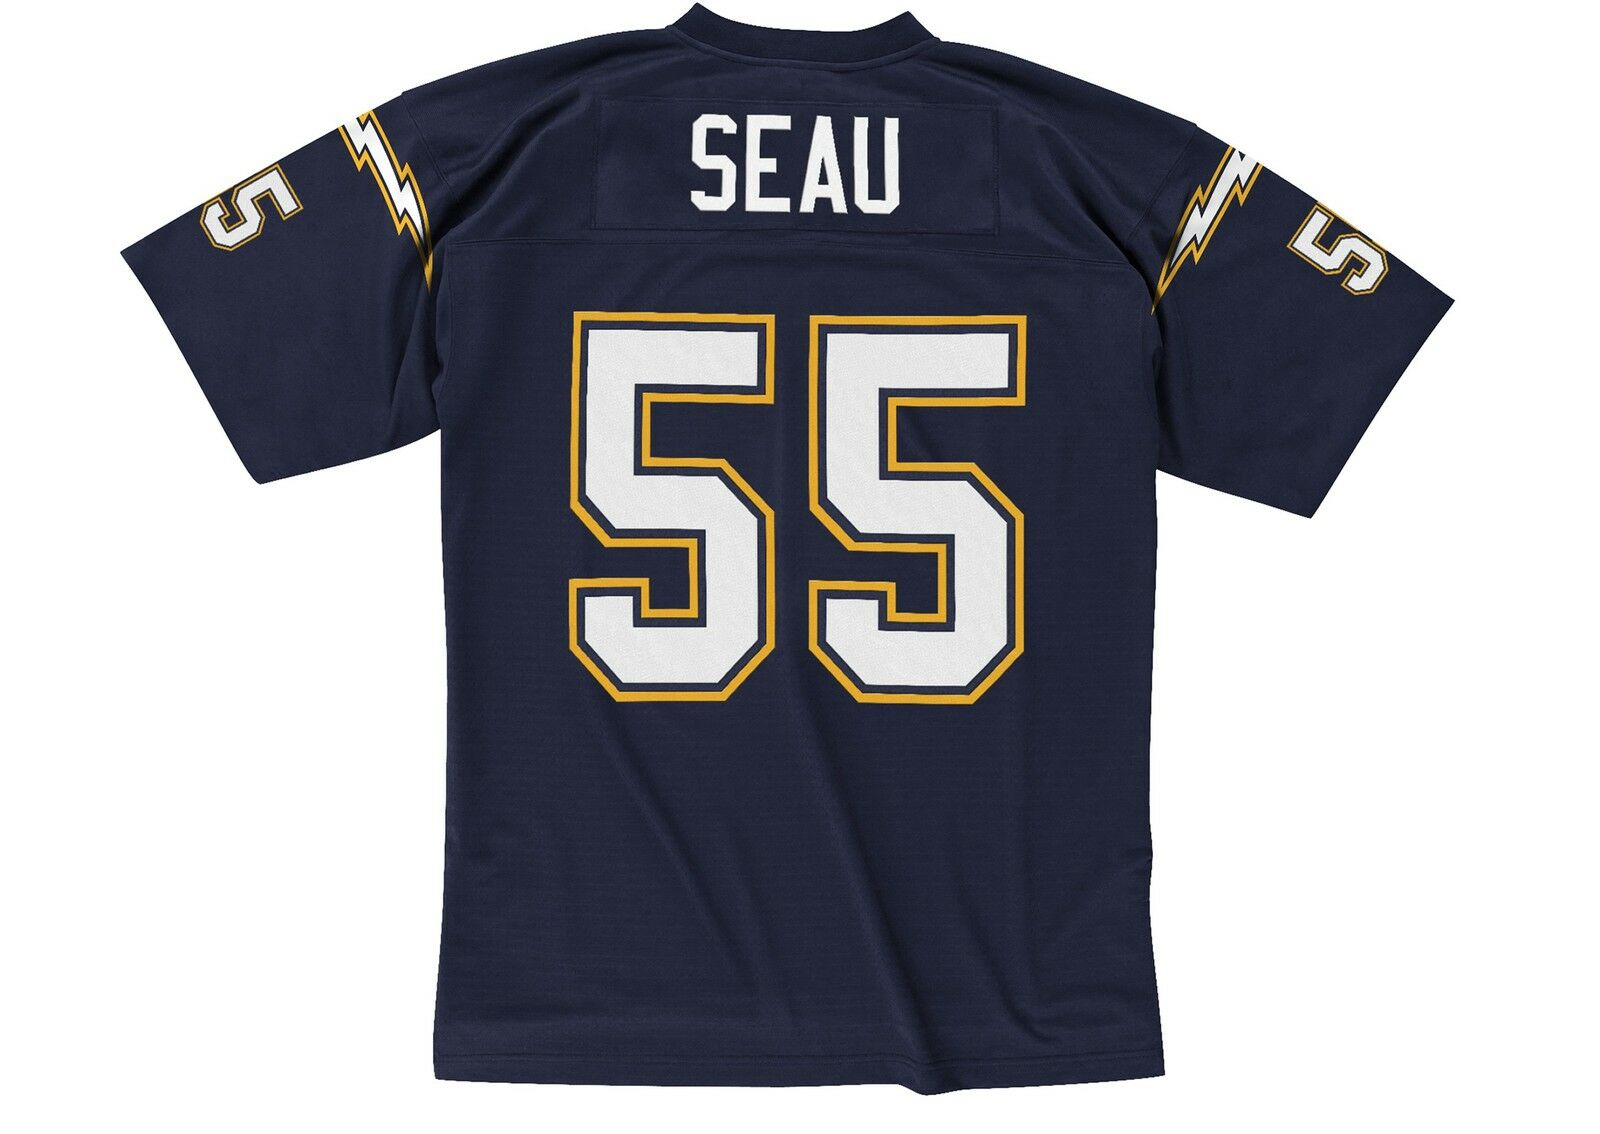 San Diego Chargers Junior Seau Jersey # 55 Authentic Adidas NFL on Field Size 52